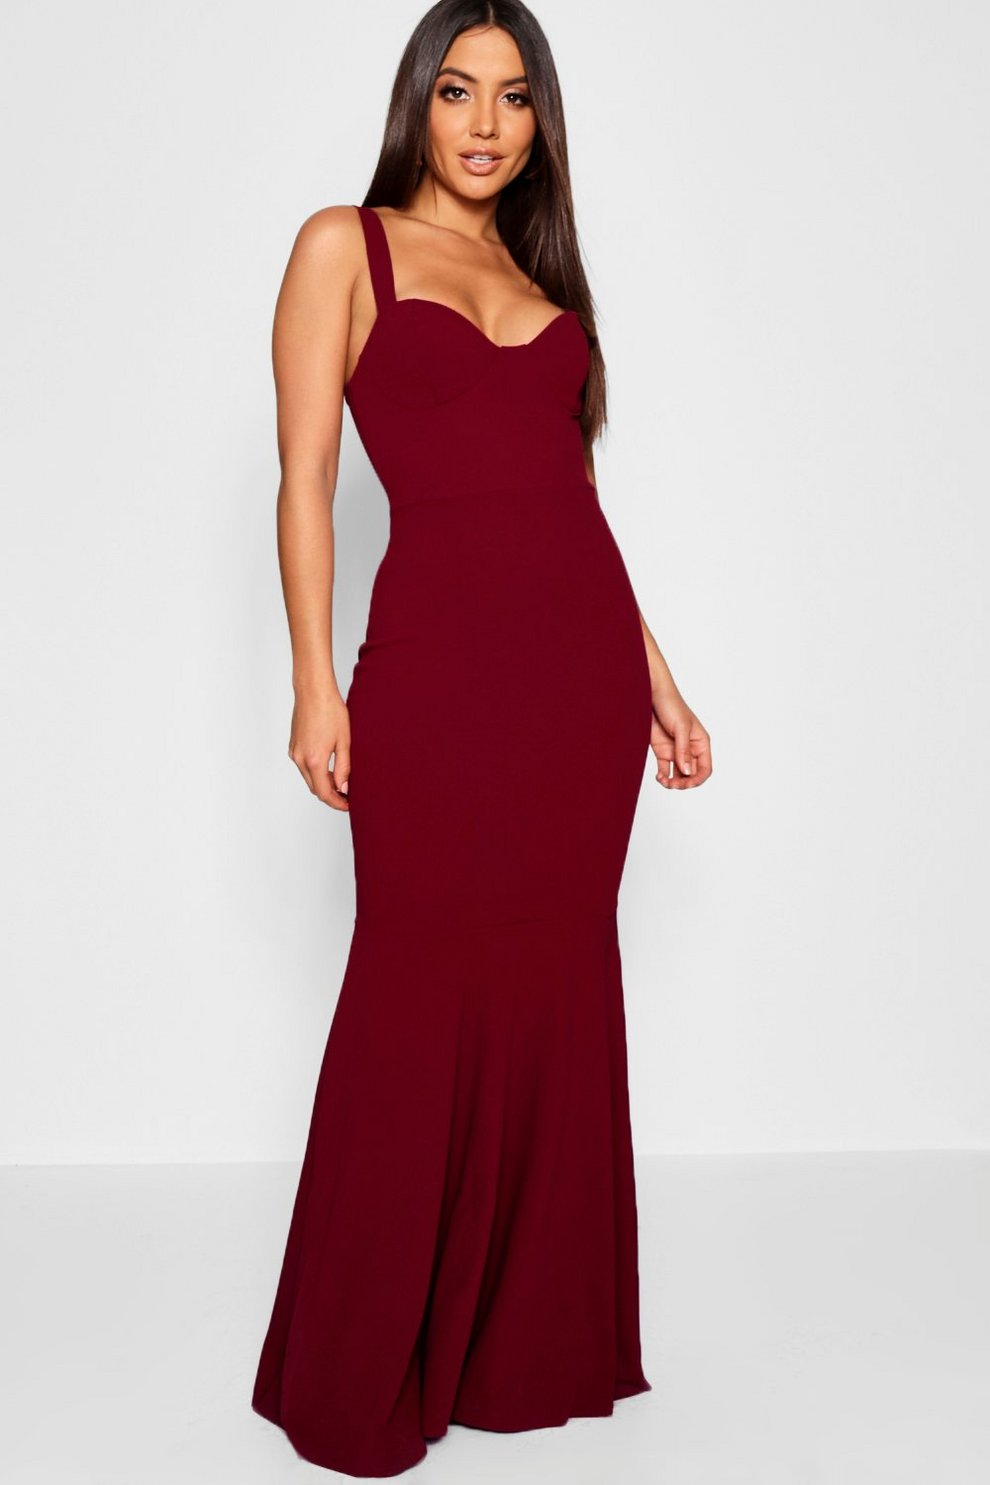 f2f3aac0d6 Womens Berry Bustier Detail Fishtail Maxi Dress. Hover to zoom